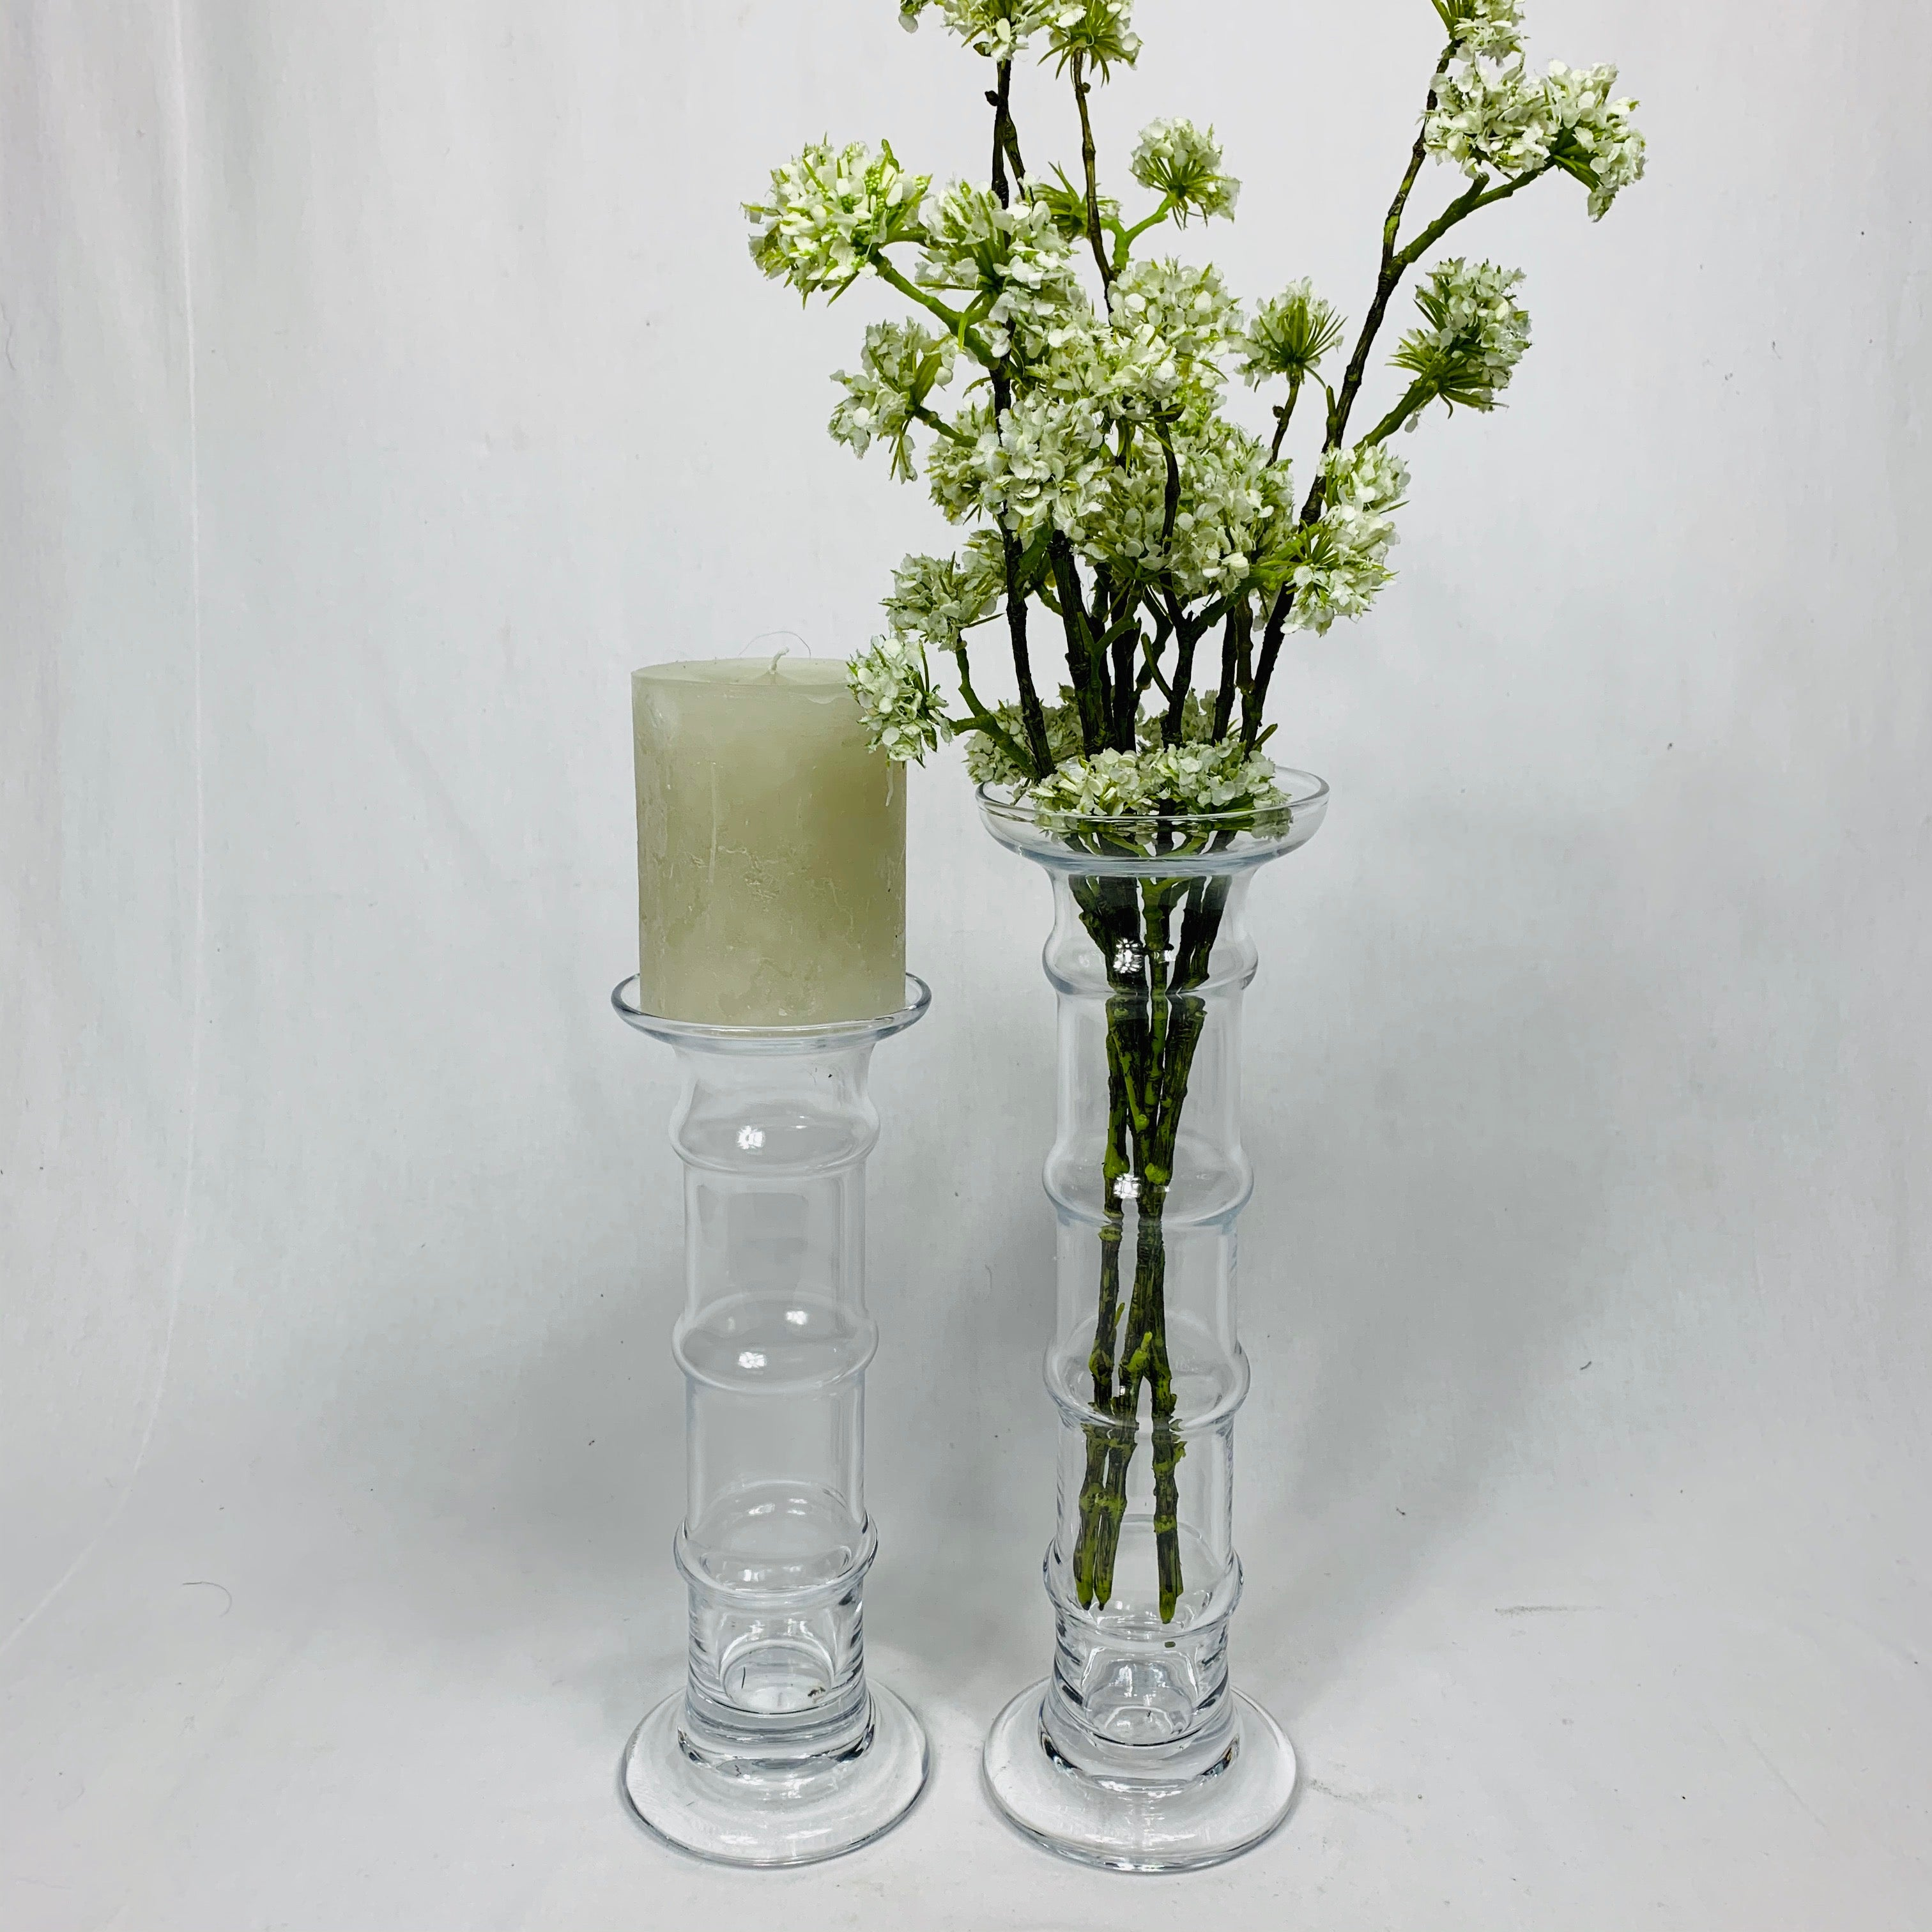 LARGE GLASS VASE-CANDLE HOLDER